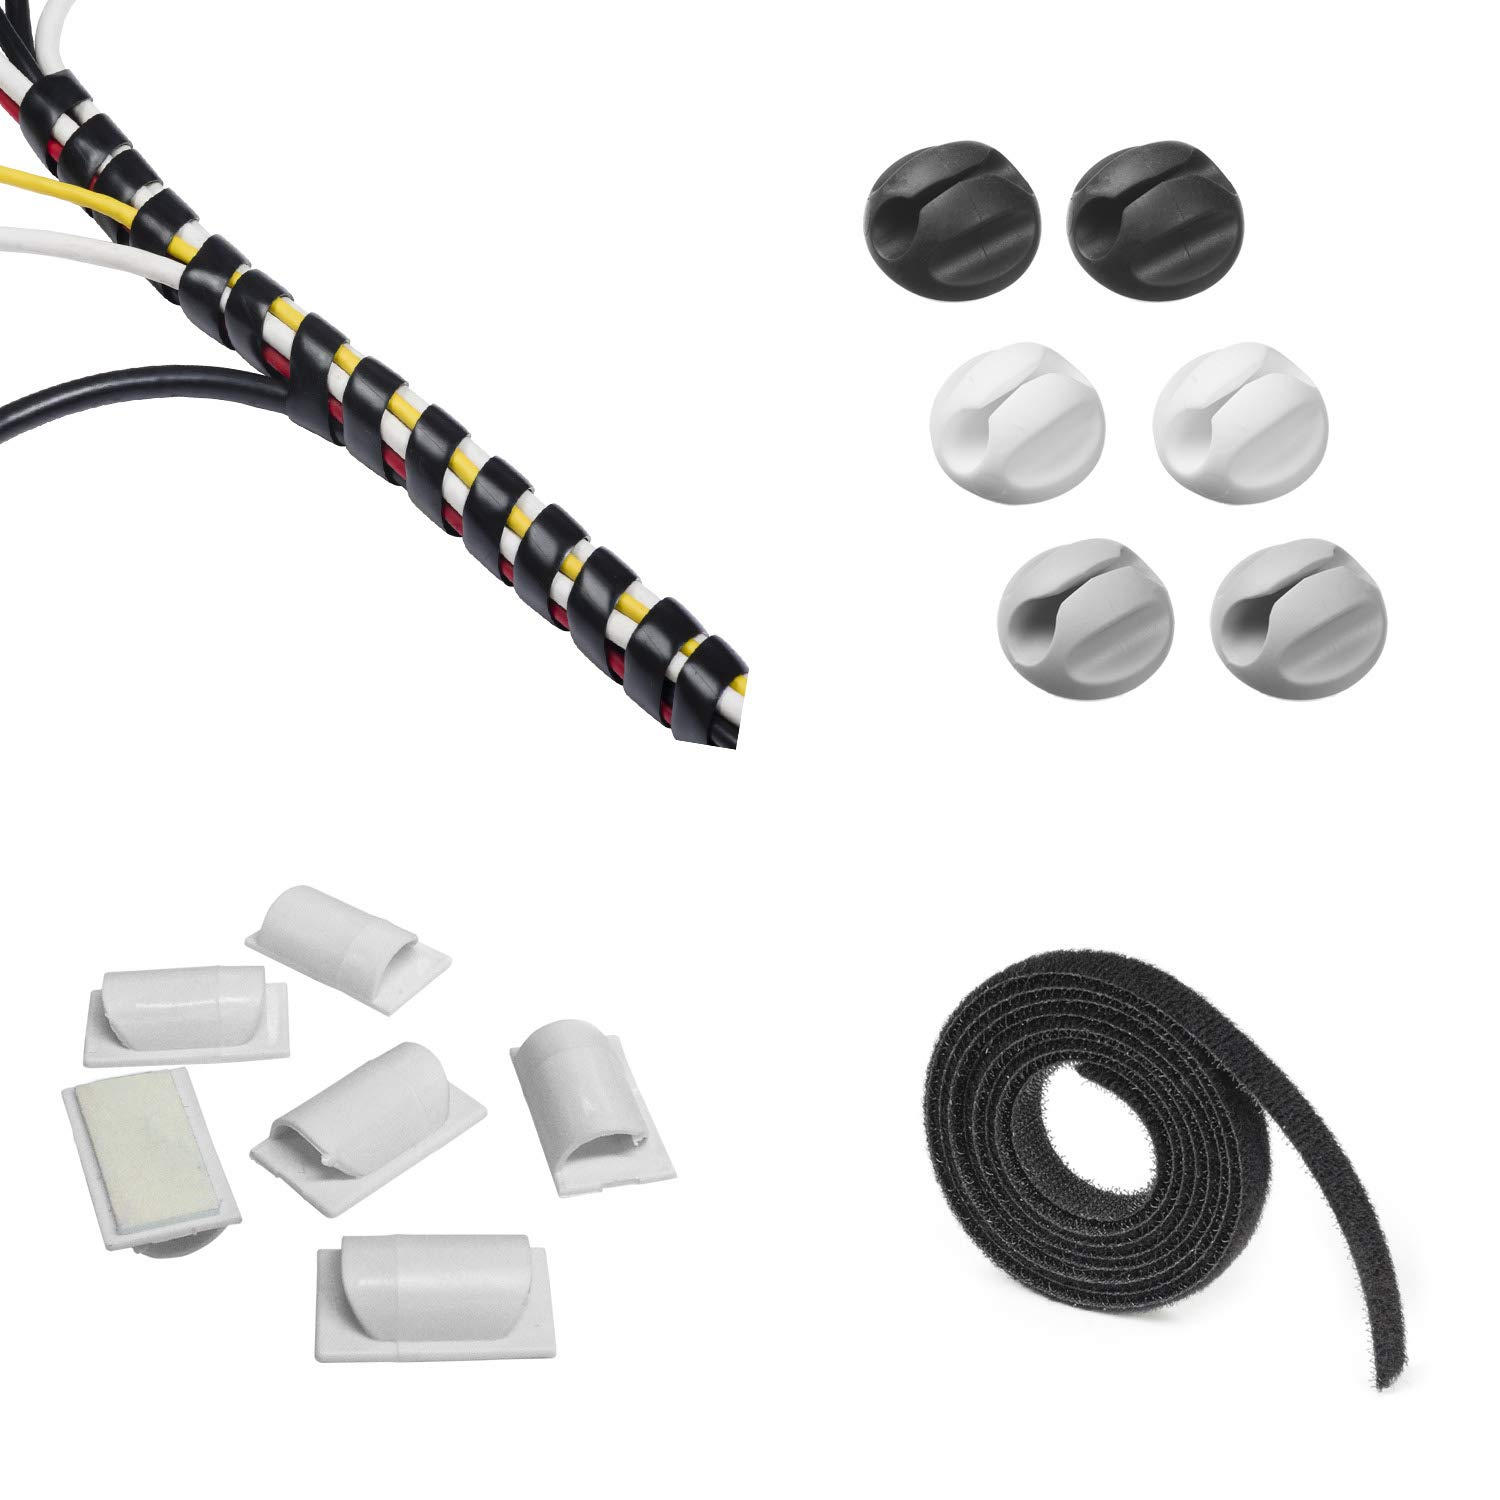 Cable Management Kit | Contains a Range of Popular D-Line Cable Management Solutions - Keep Cords Organized in the Home or Office - 4 x Solutions Supplied Per Pack